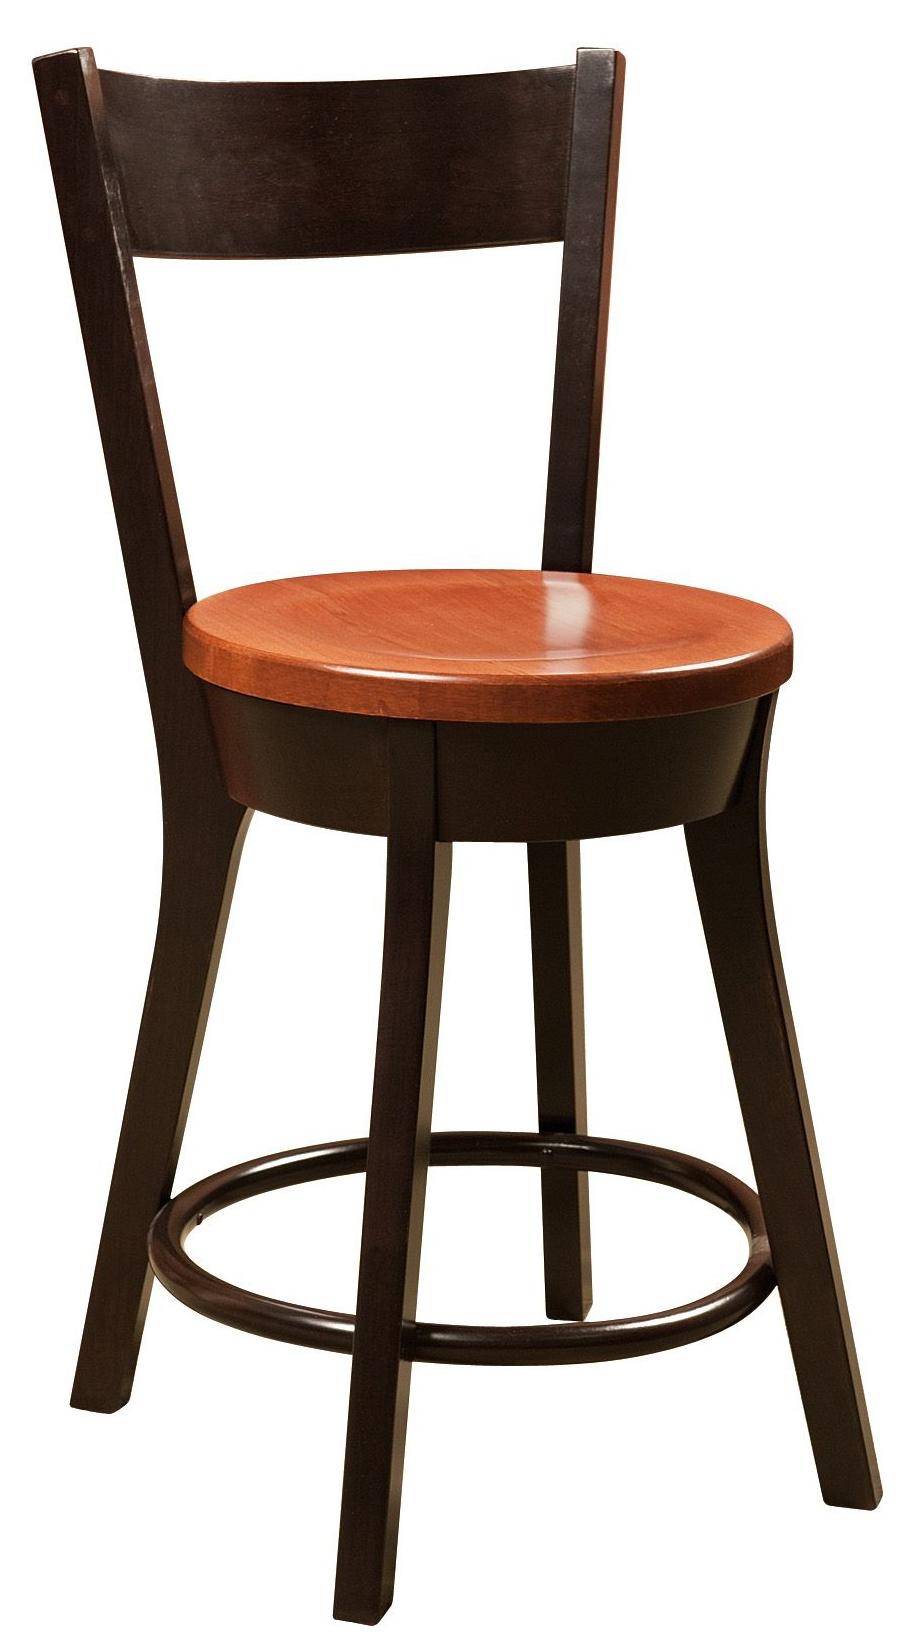 Bar Chairs Cape Cod Bar Chair by Amish Impressions by Fusion Designs at Mueller Furniture